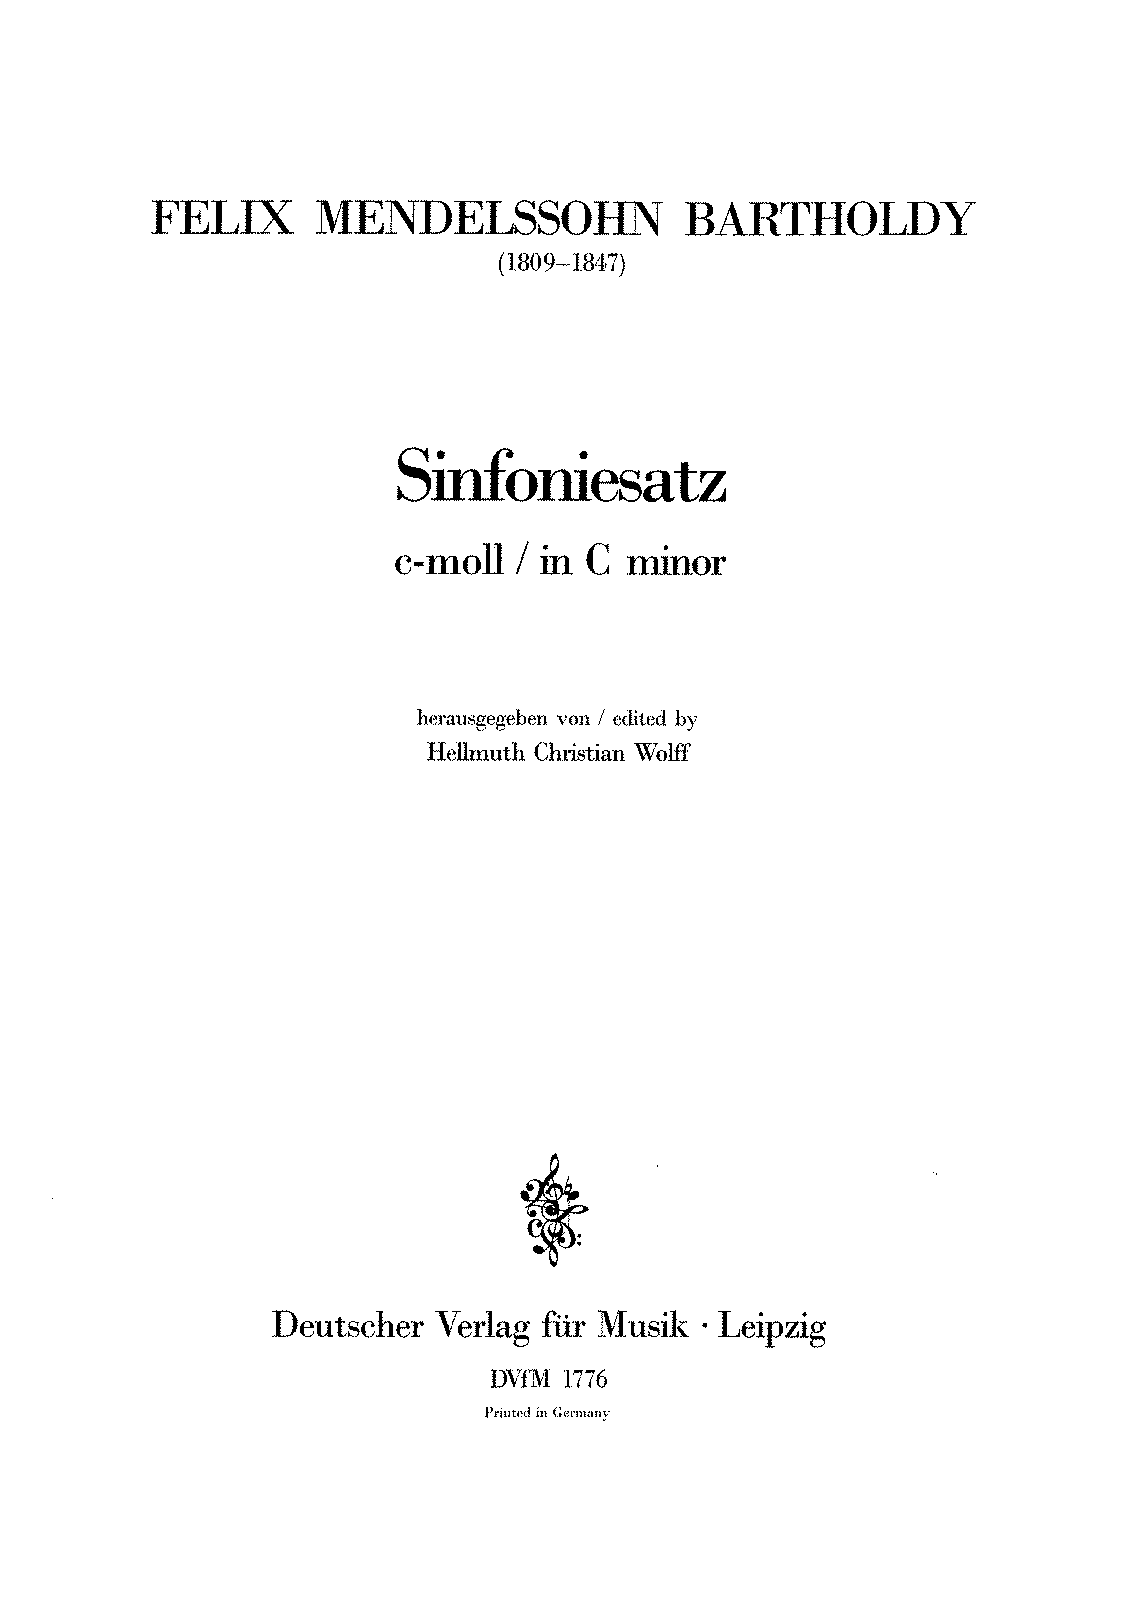 PMLP207416-Mendelssohn, Felix - Sinfoniesatz for String in C minor MWV N 14.pdf